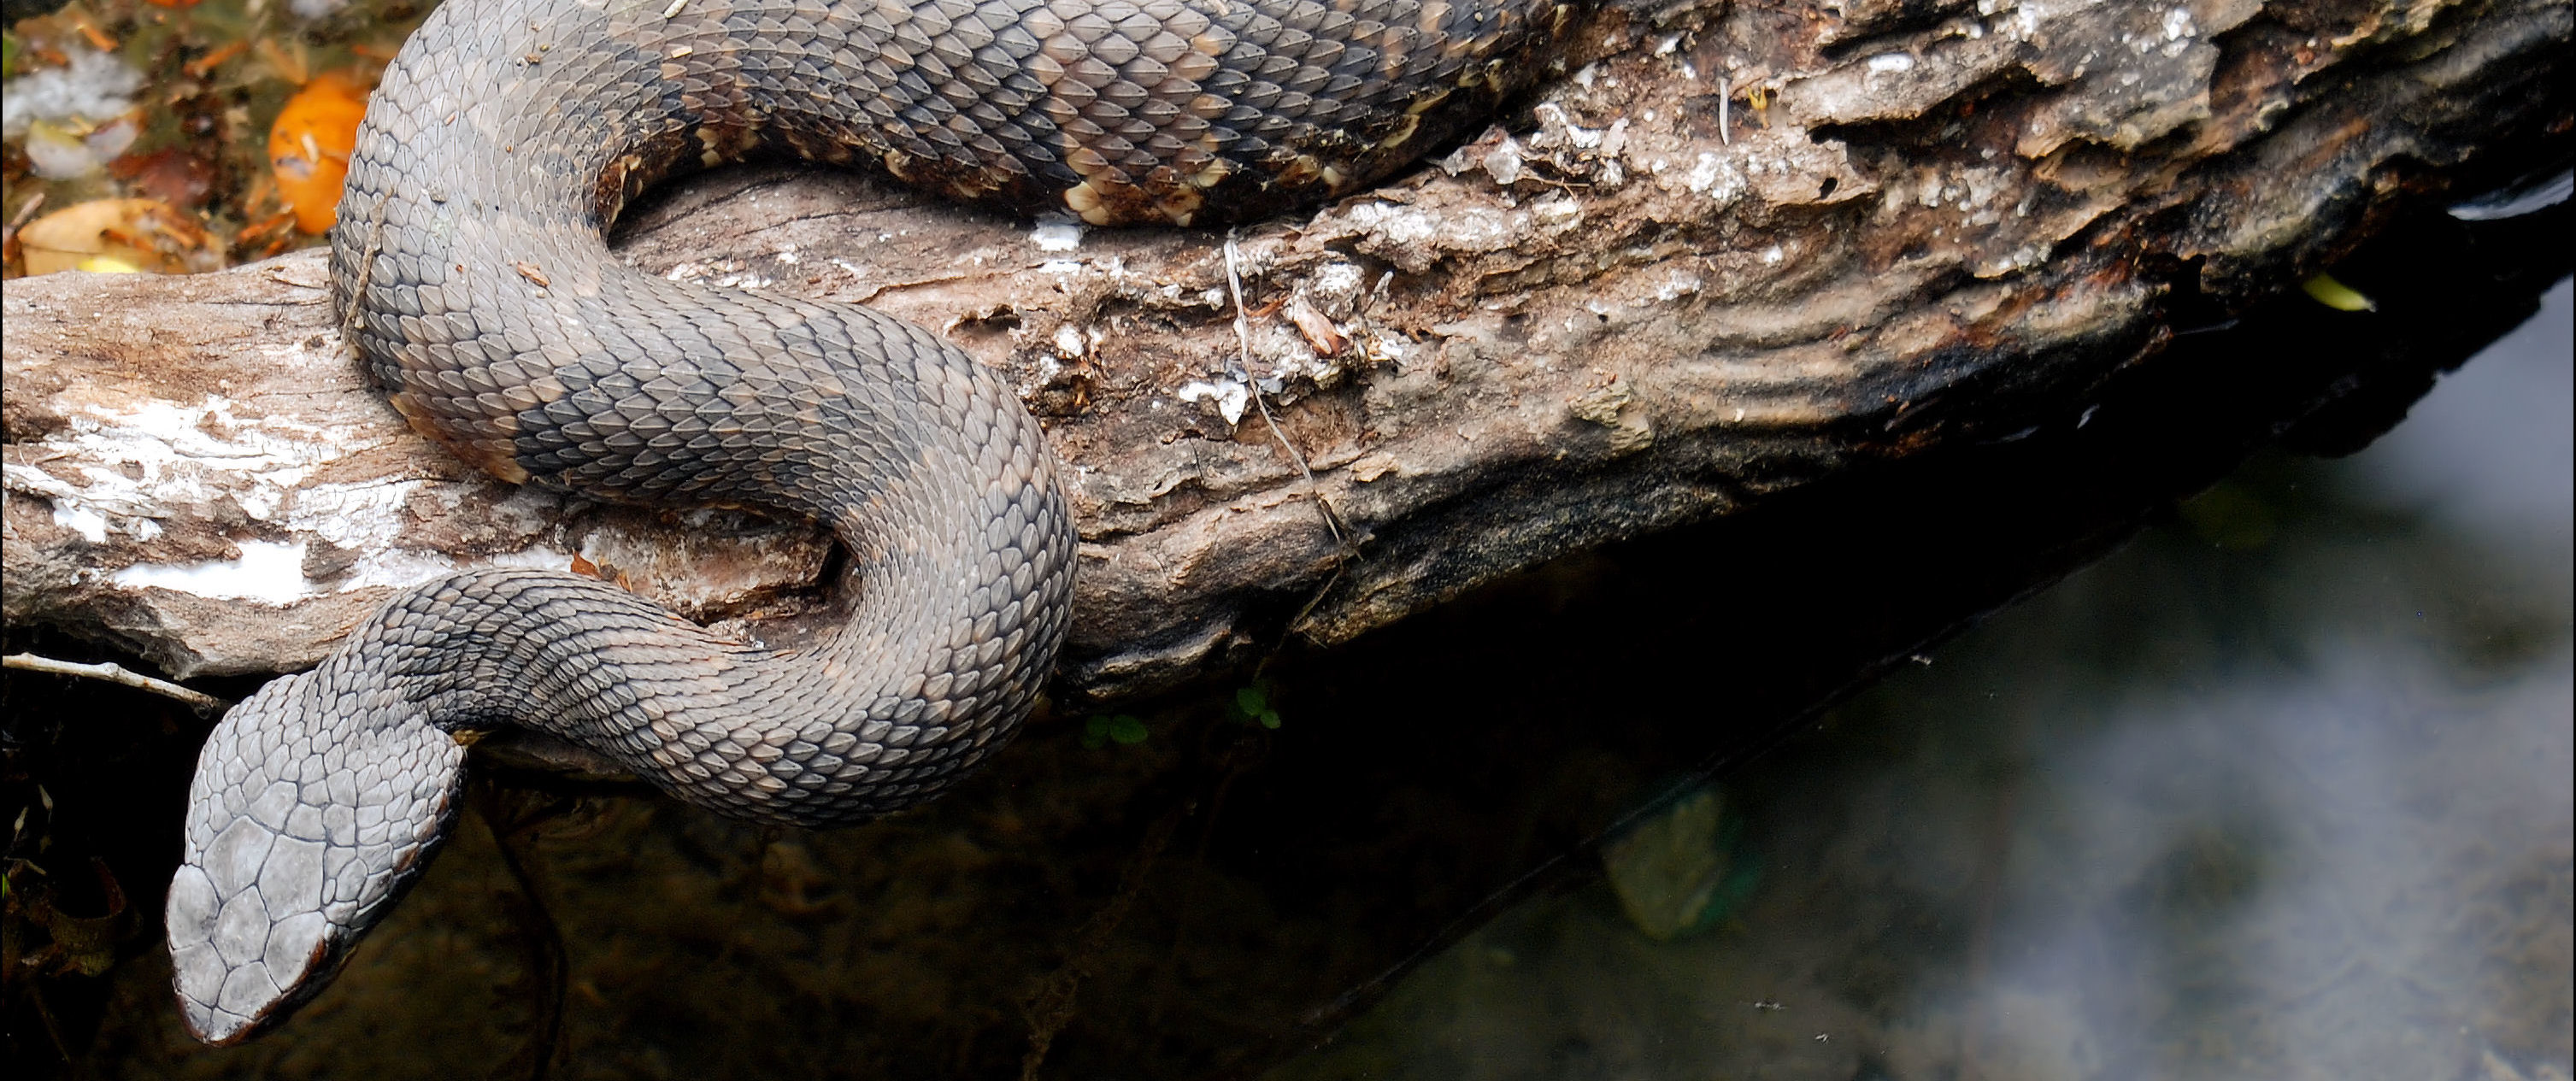 Venomous Texas Snakes How To Tell If A Snake Is A Texas